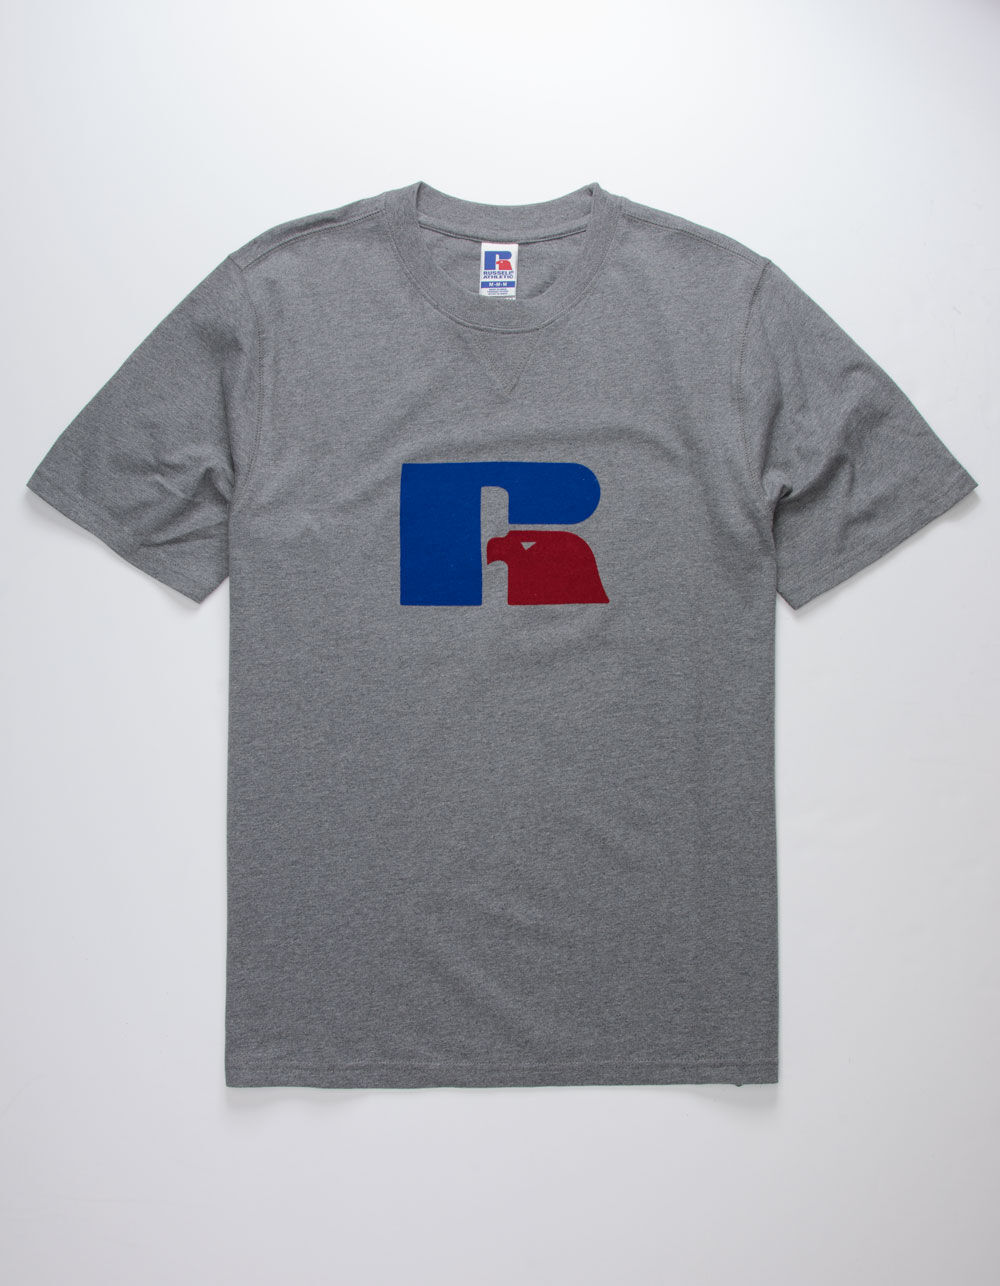 RUSSELL ATHLETIC Jerry Flock Heather Gray T-Shirt